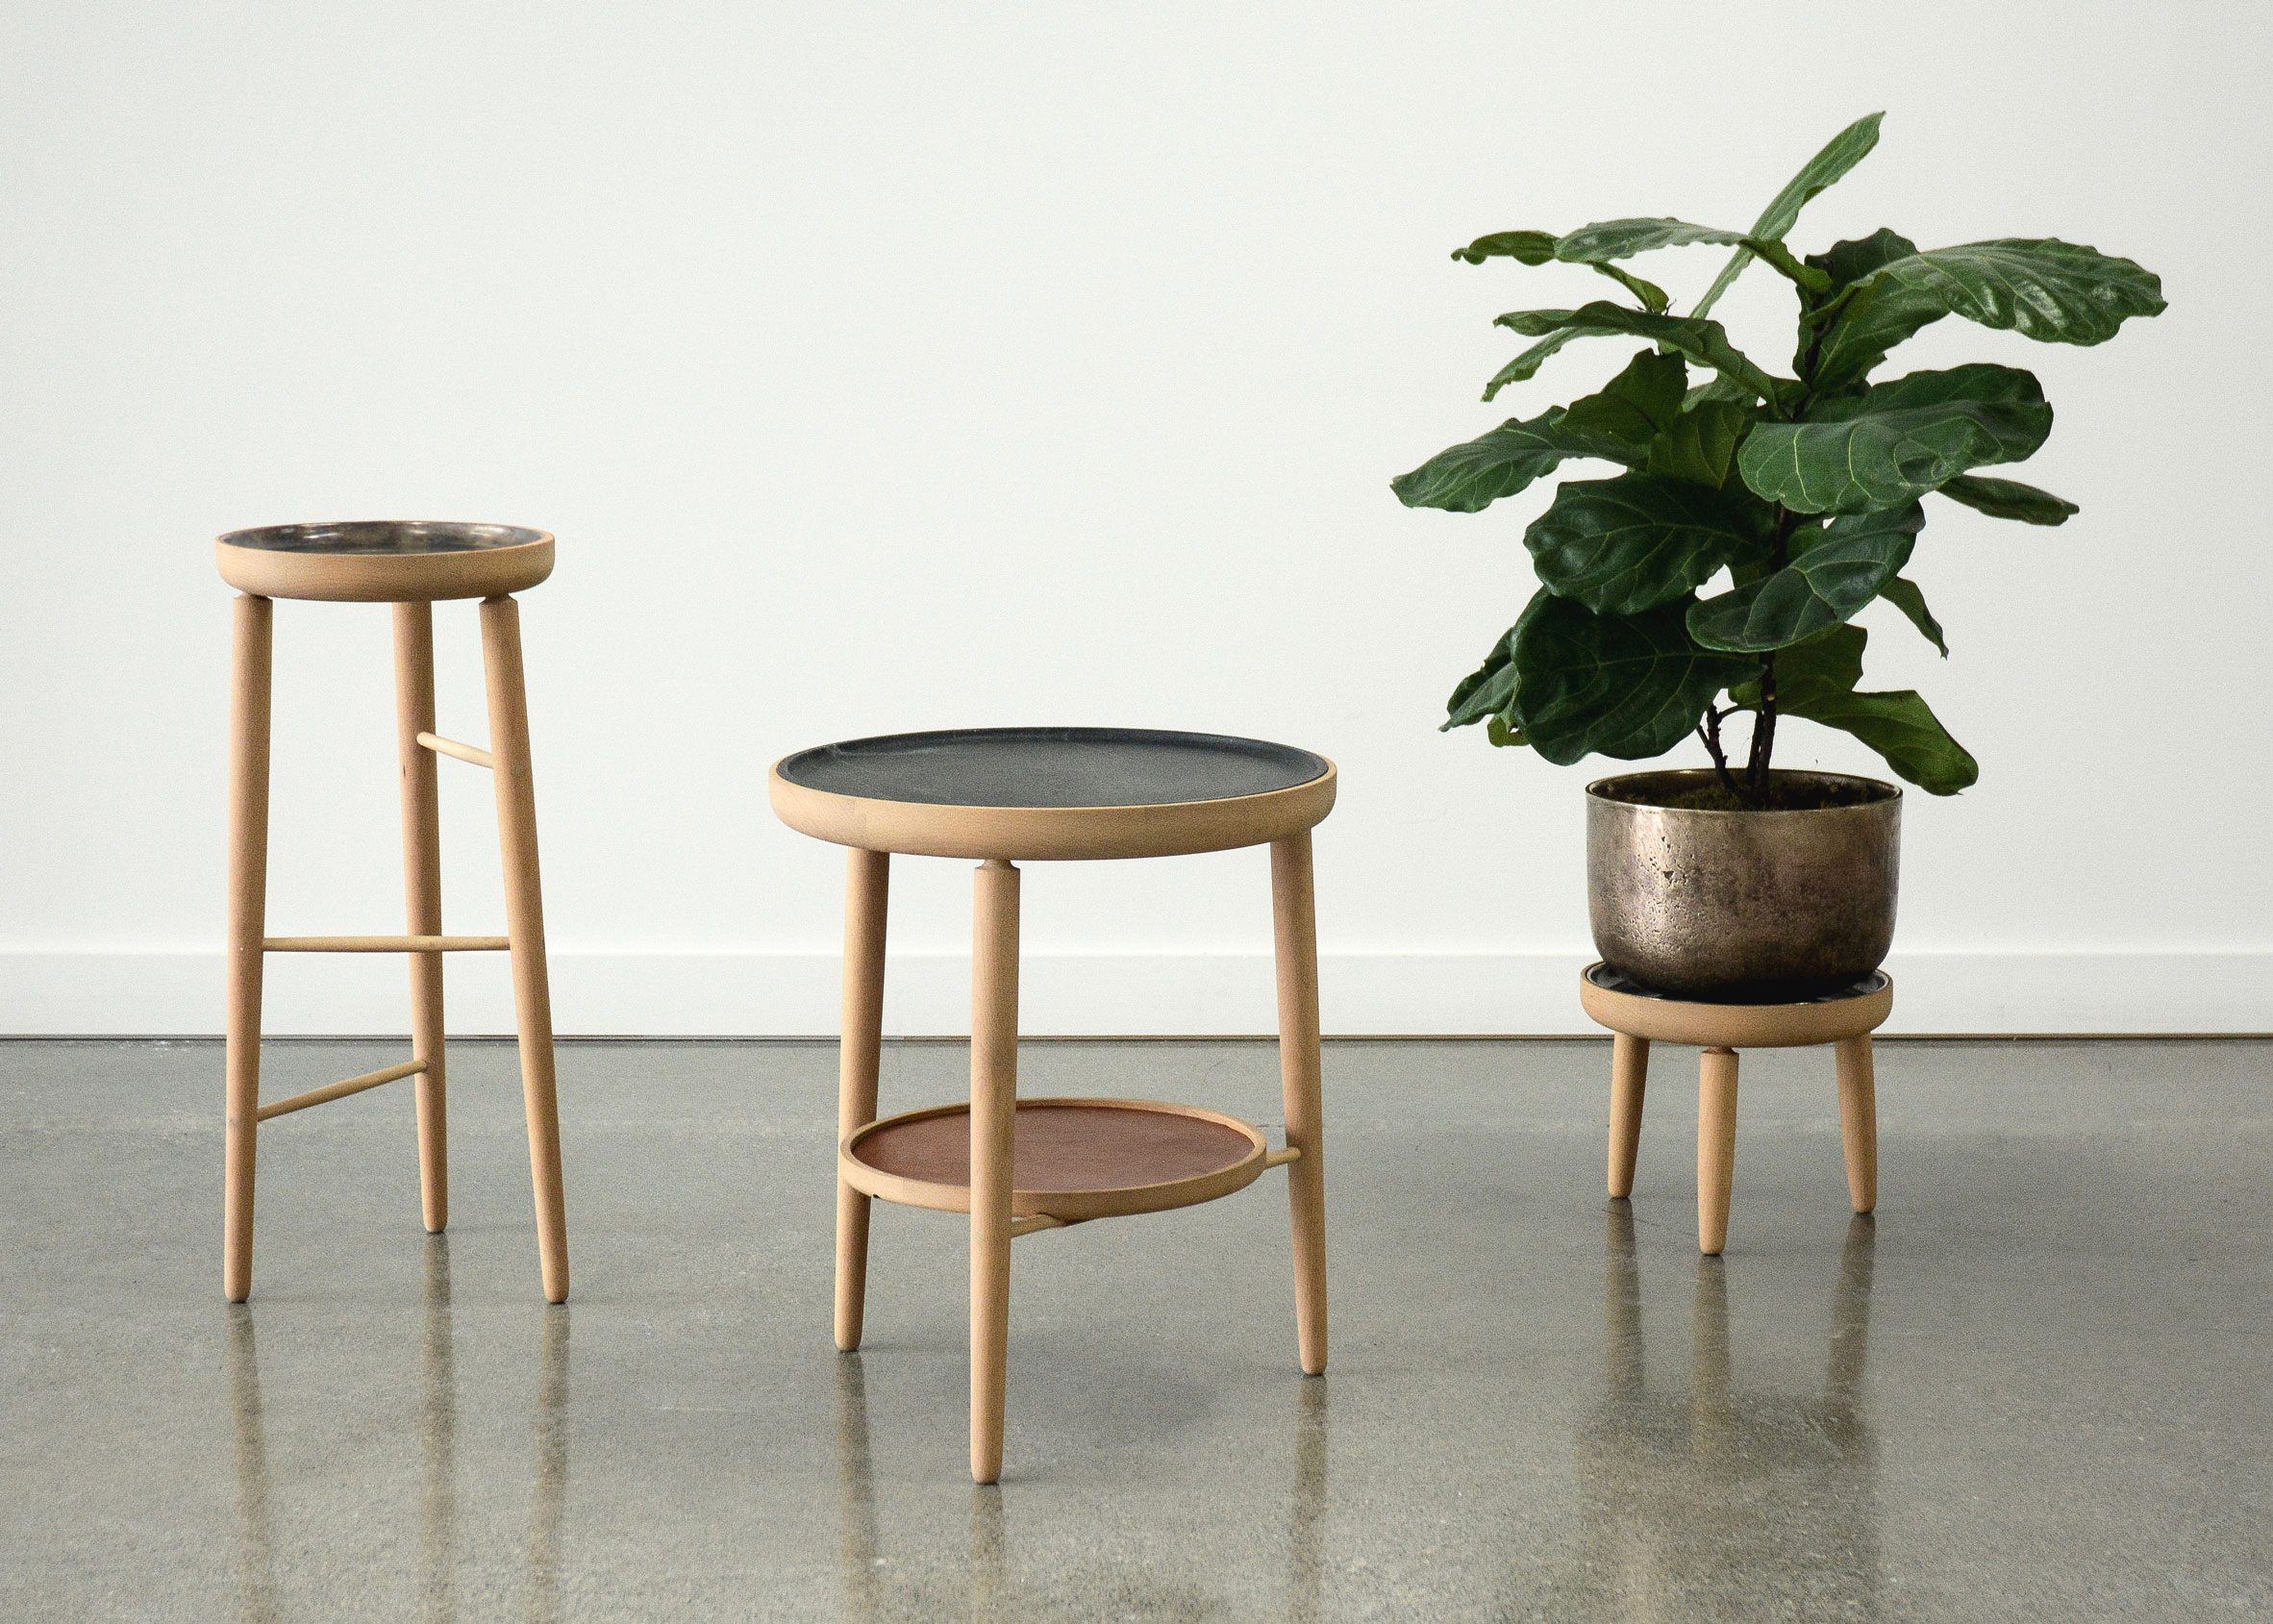 Baré tables and planters by Jake Whillans